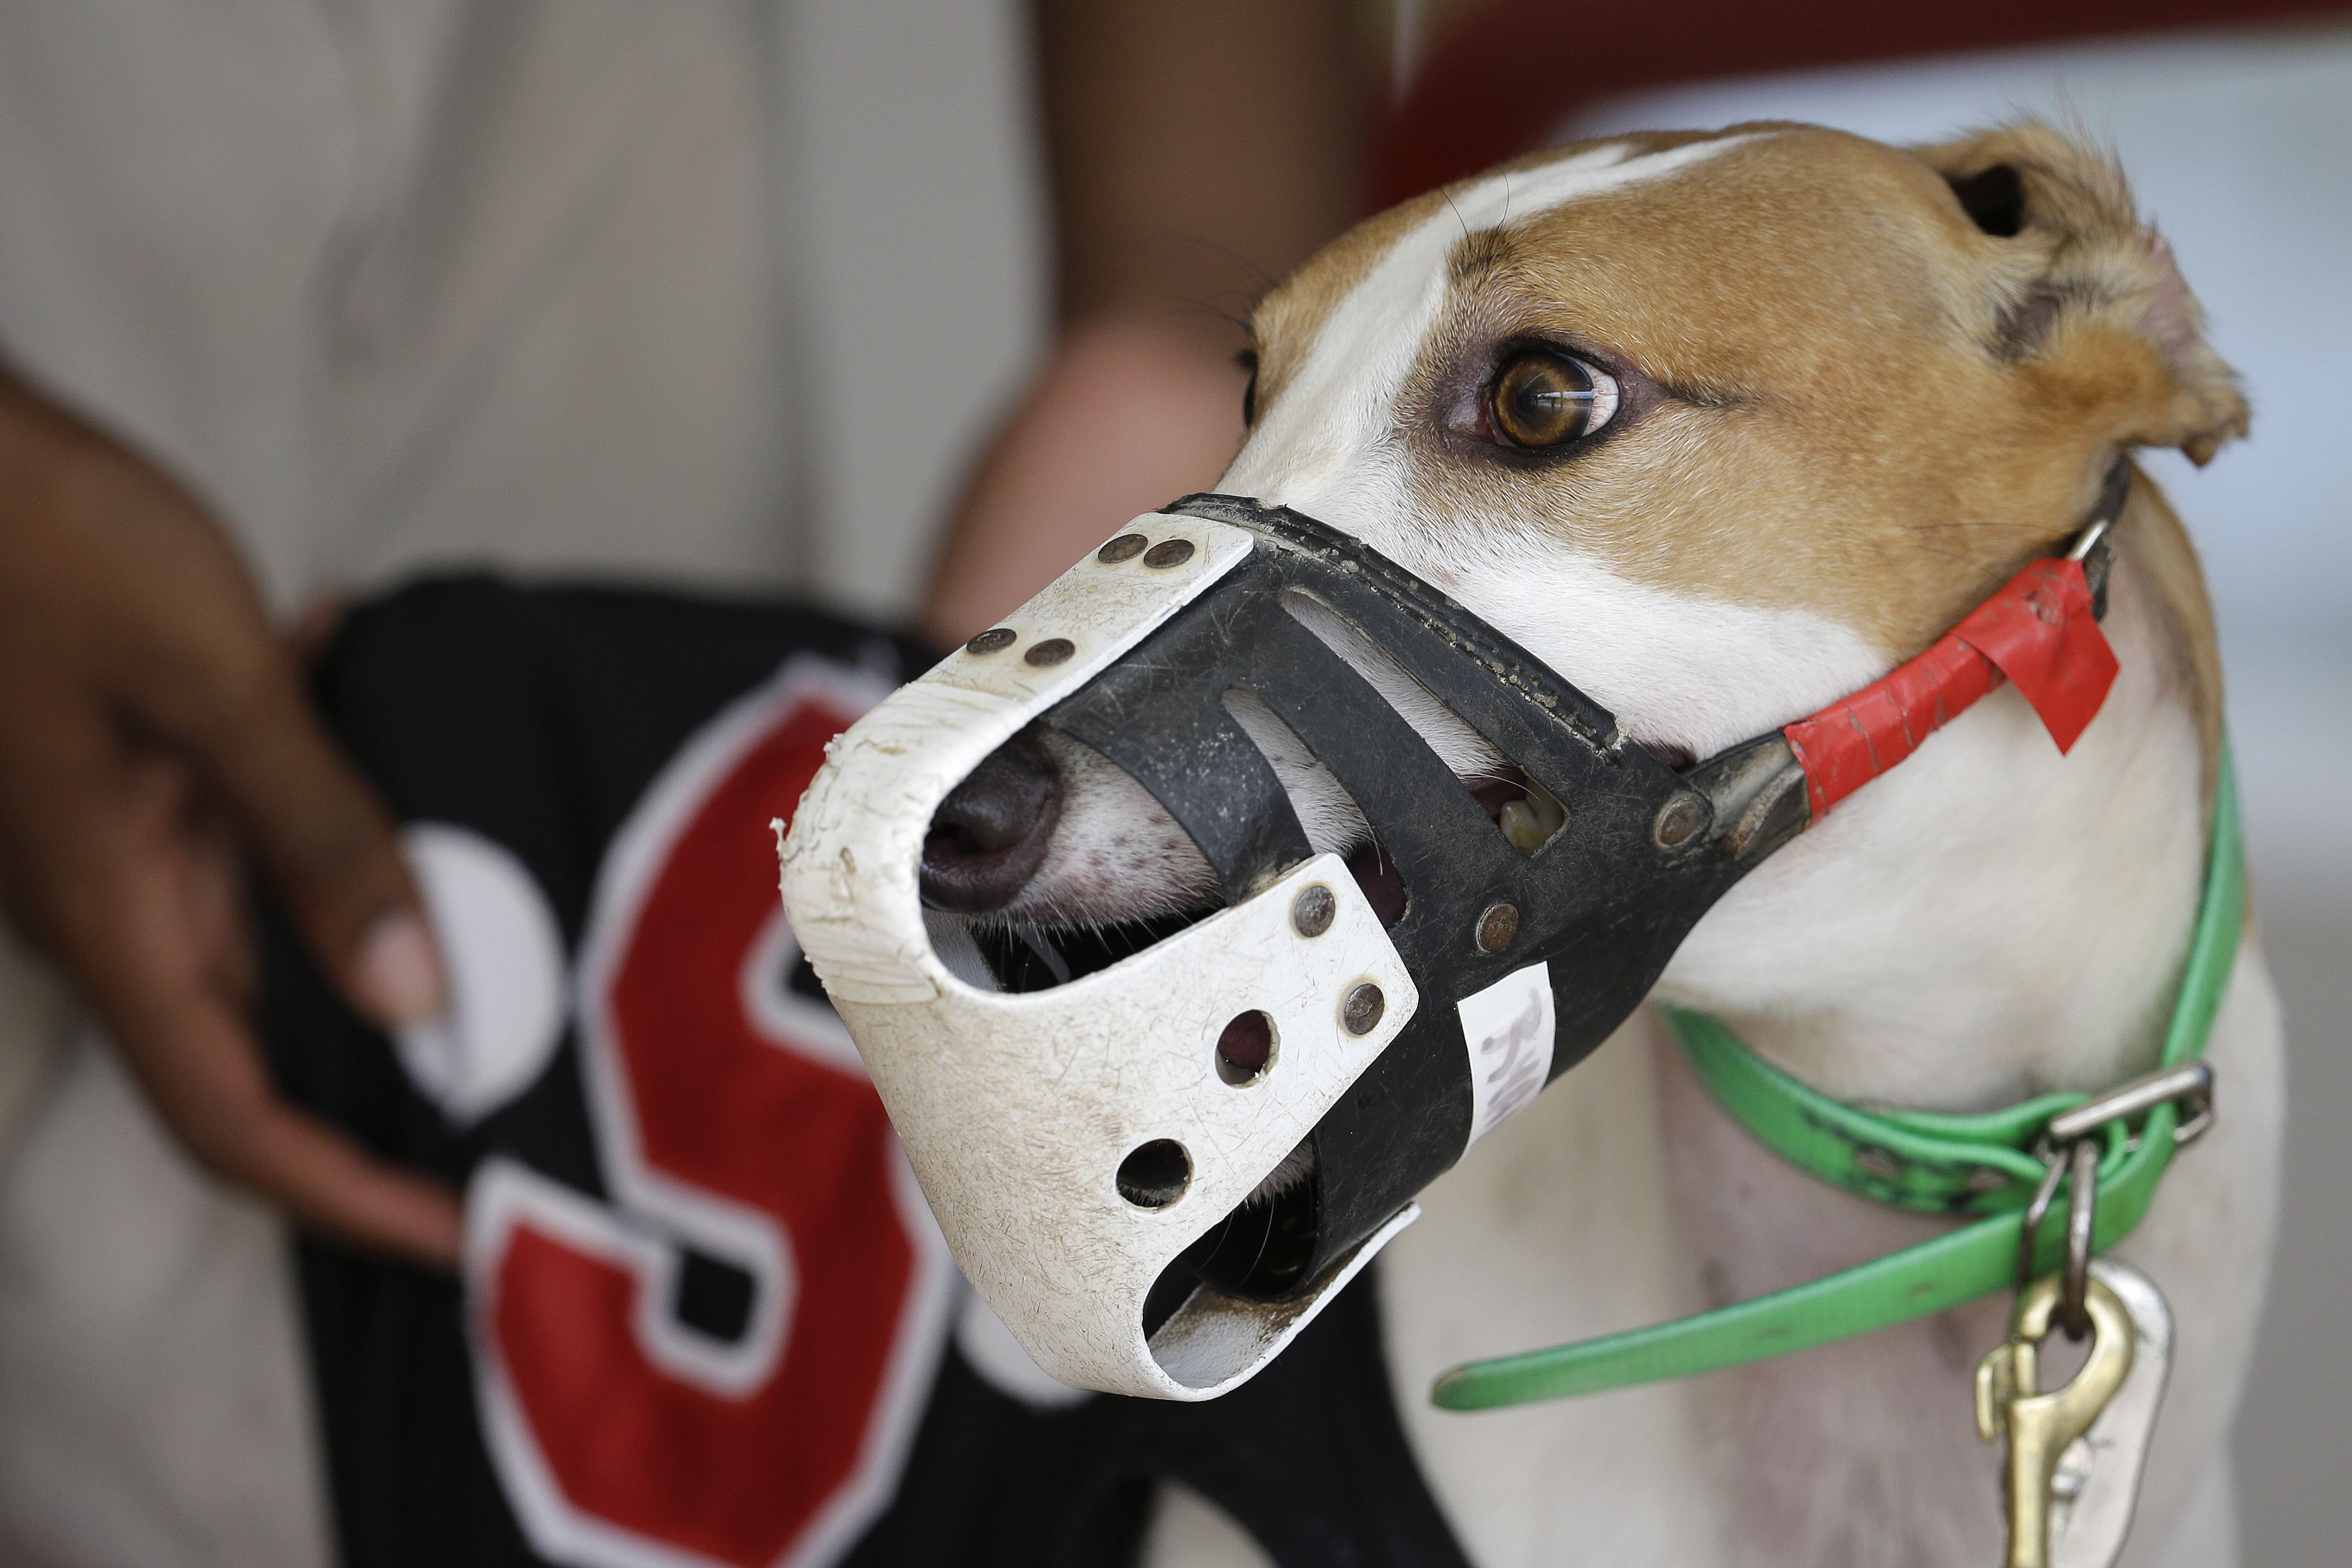 Dog Racings Decline A greyhound gets his bib put on before racing at the Flagler Dog Track in Miami last month. Greyhound racing used to be a popular sport in the United States, but in recent years it has fallen out of favor with gamblers and aficionados.